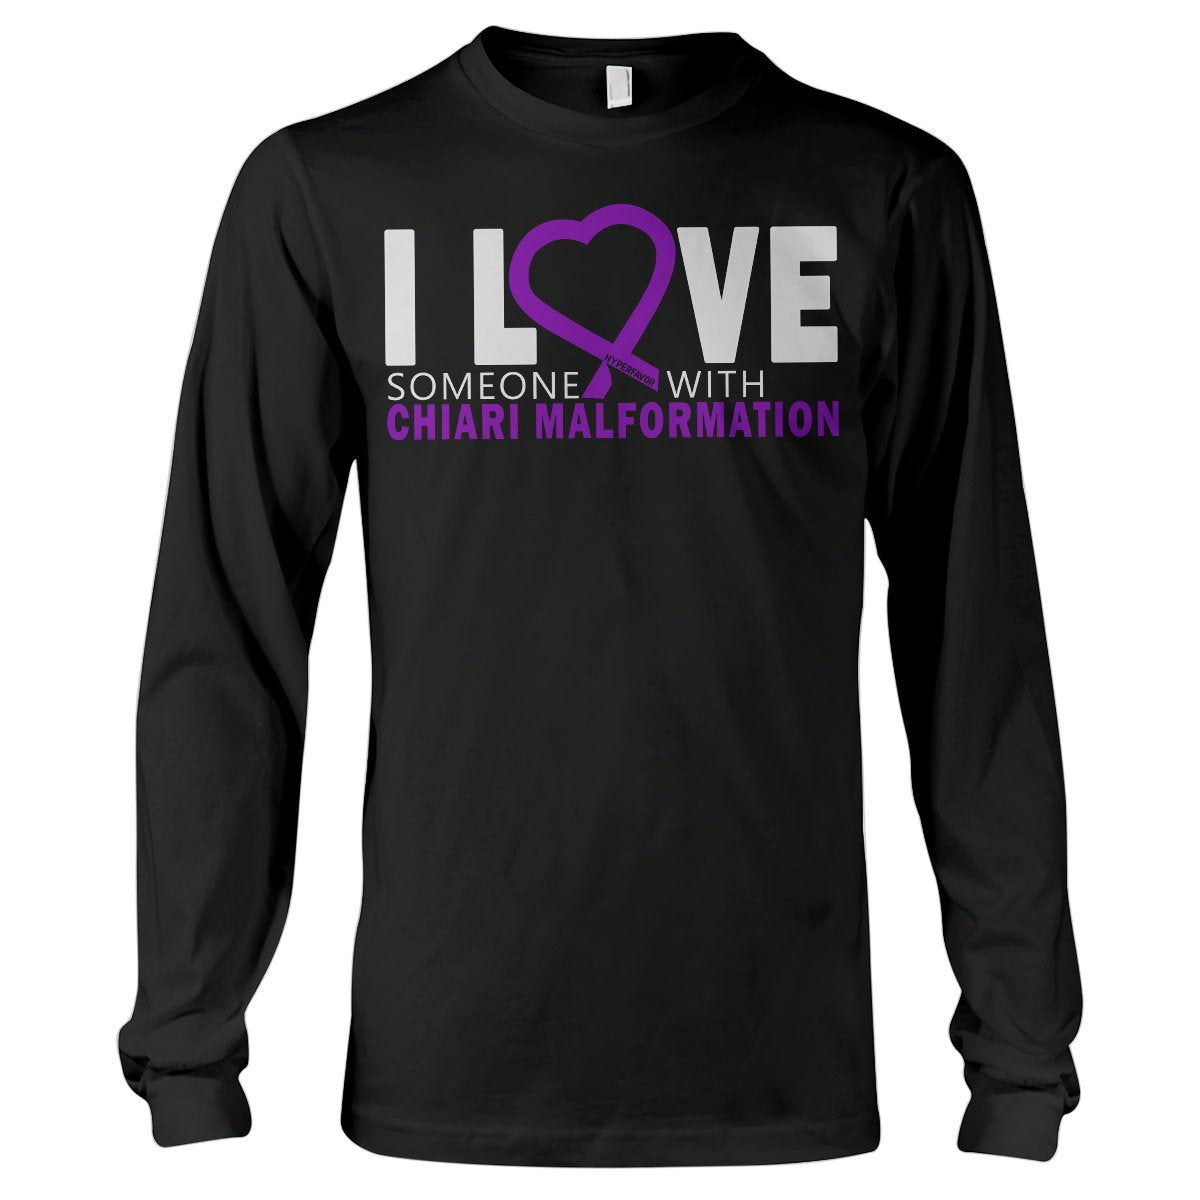 I Love Someone With Chiari Malformation Long Sleeve T-Shirt